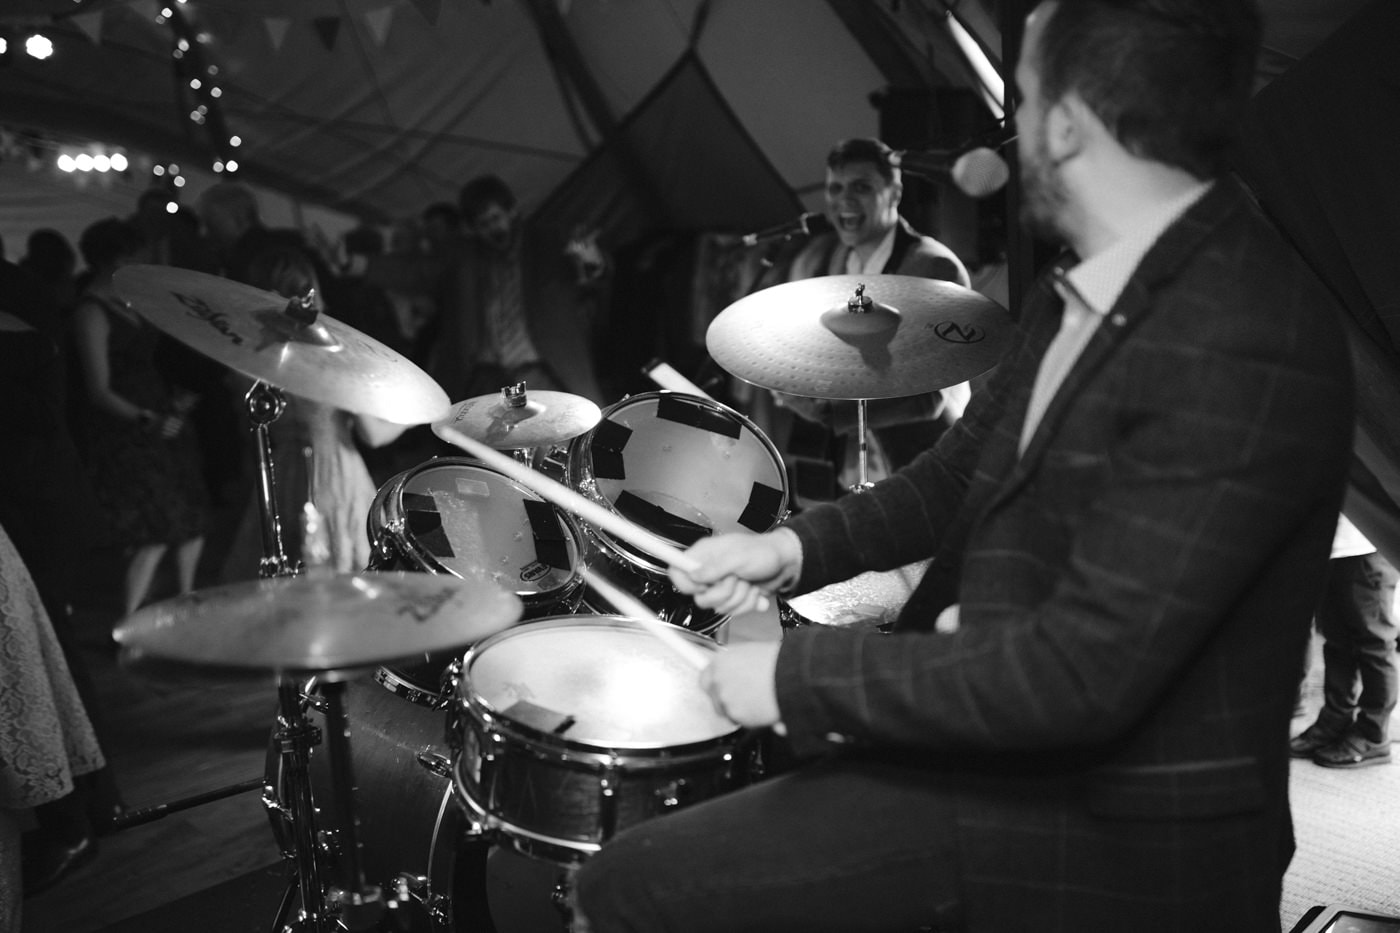 Portrait of Drummer at Wedding Venue Under Tipi Tent